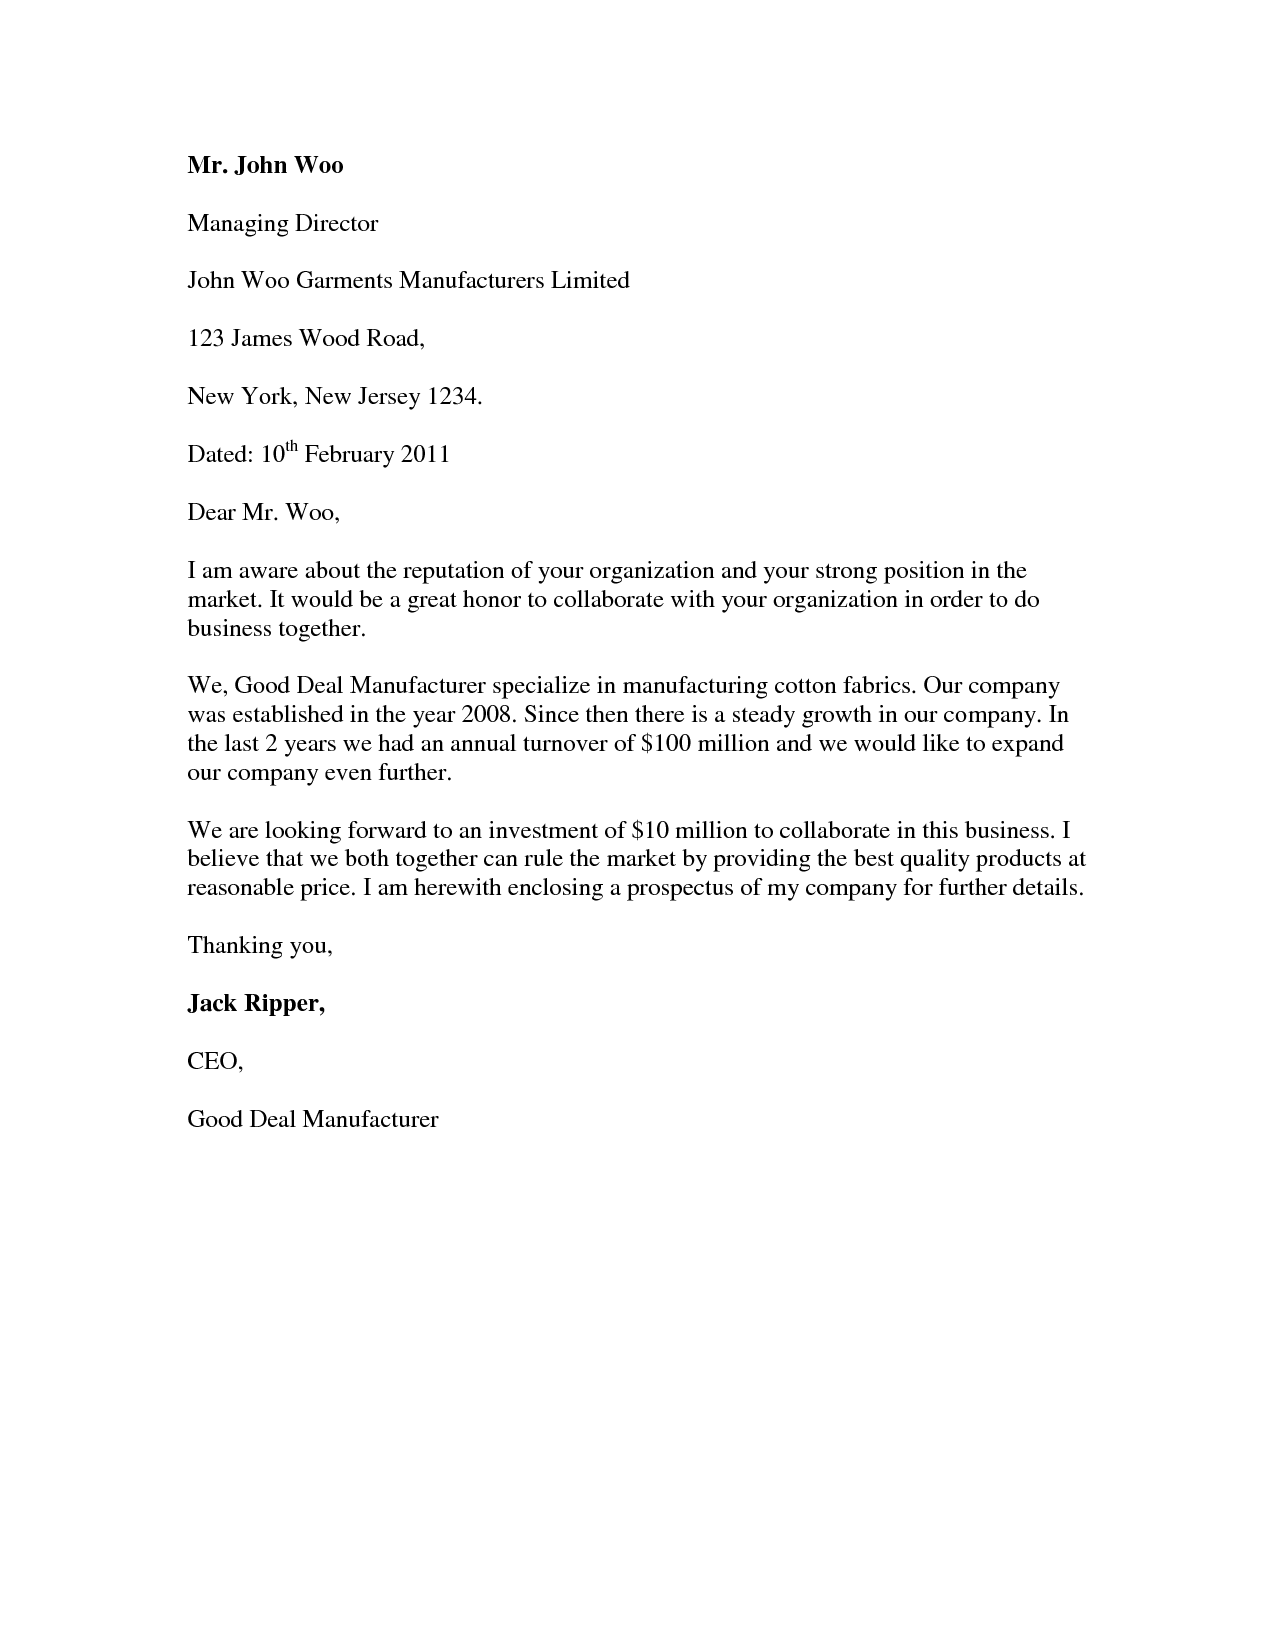 Covering Letter Example Standard Cover Letter With Cv 1650 1275px Simple Cover Letter Letter Fo Letter Example Writing A Cover Letter Cover Letter Template